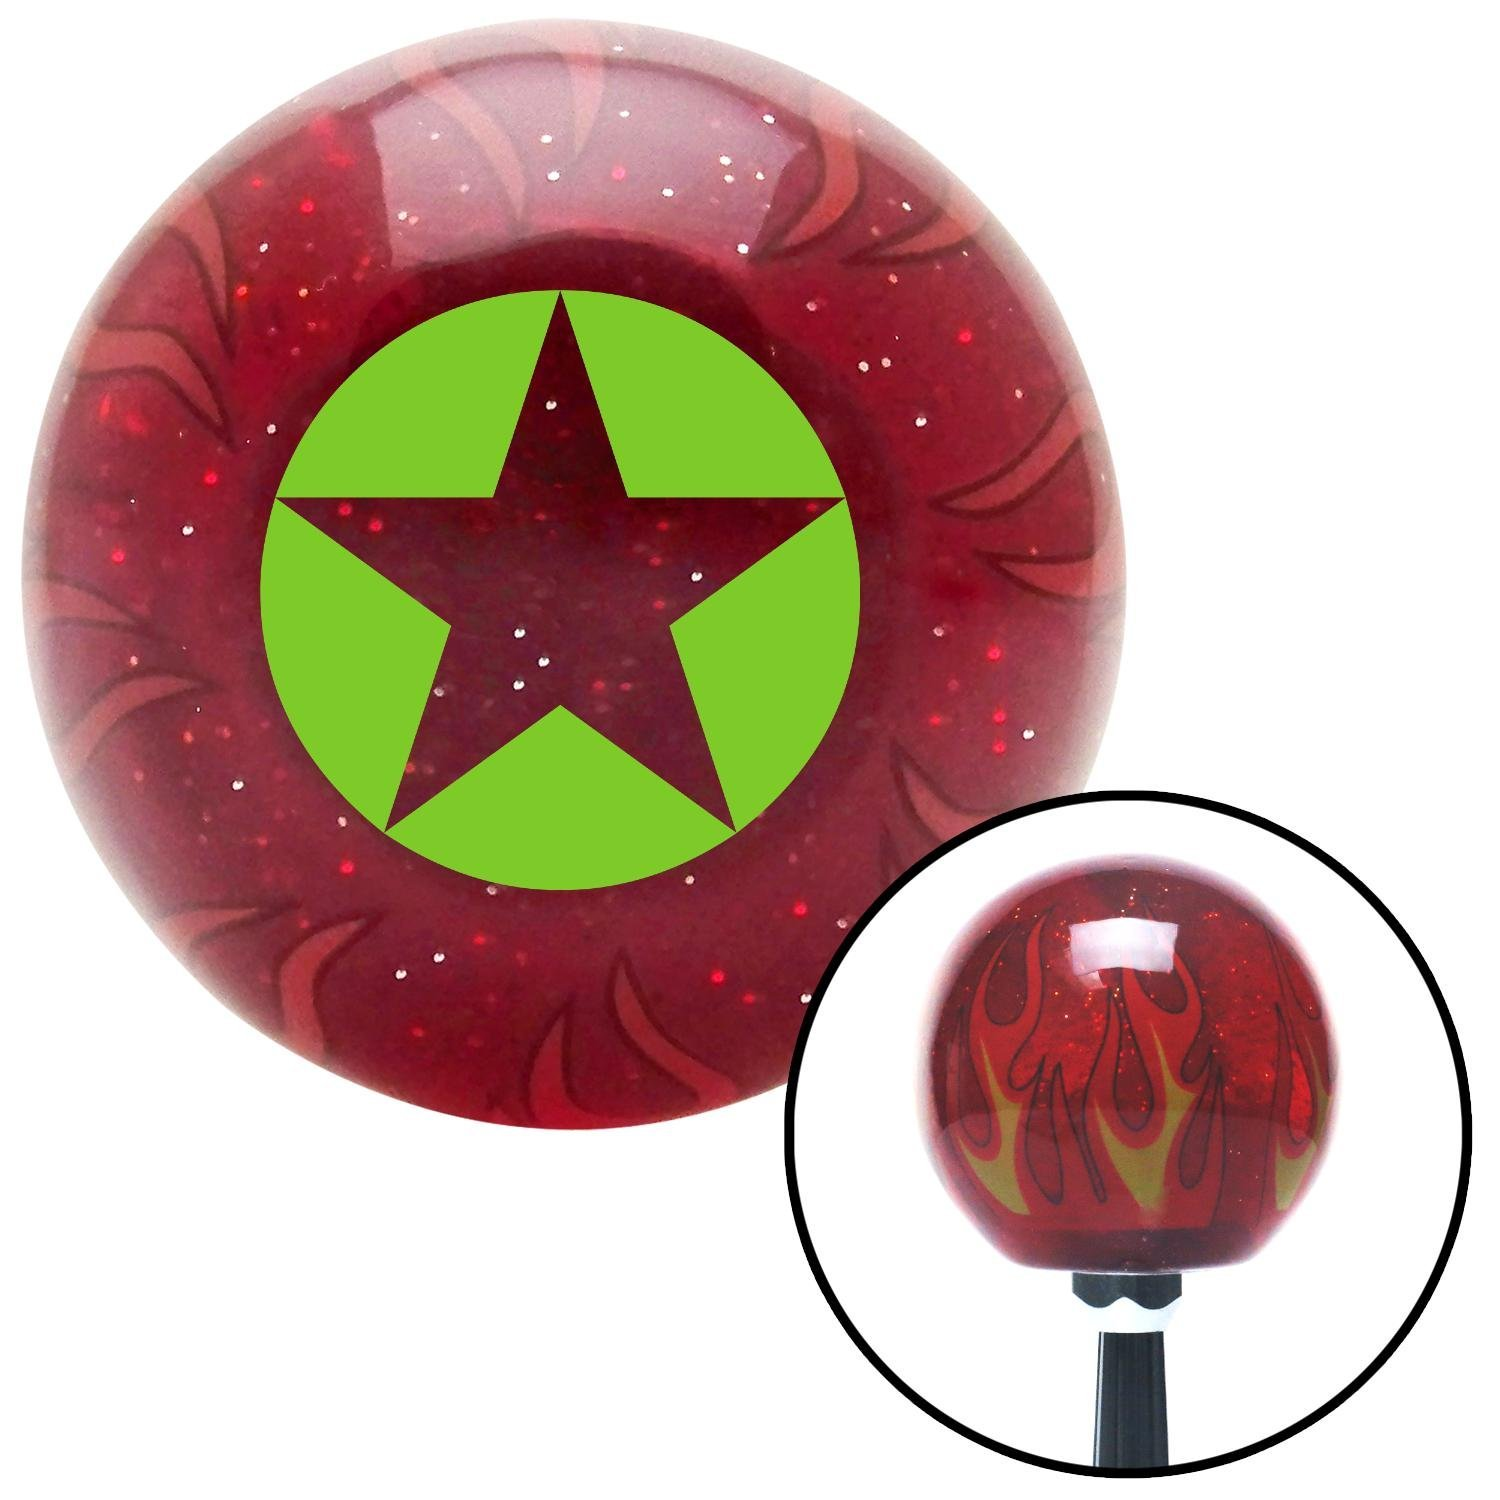 American Shifter 241893 Red Flame Metal Flake Shift Knob with M16 x 1.5 Insert Green Star in Circle